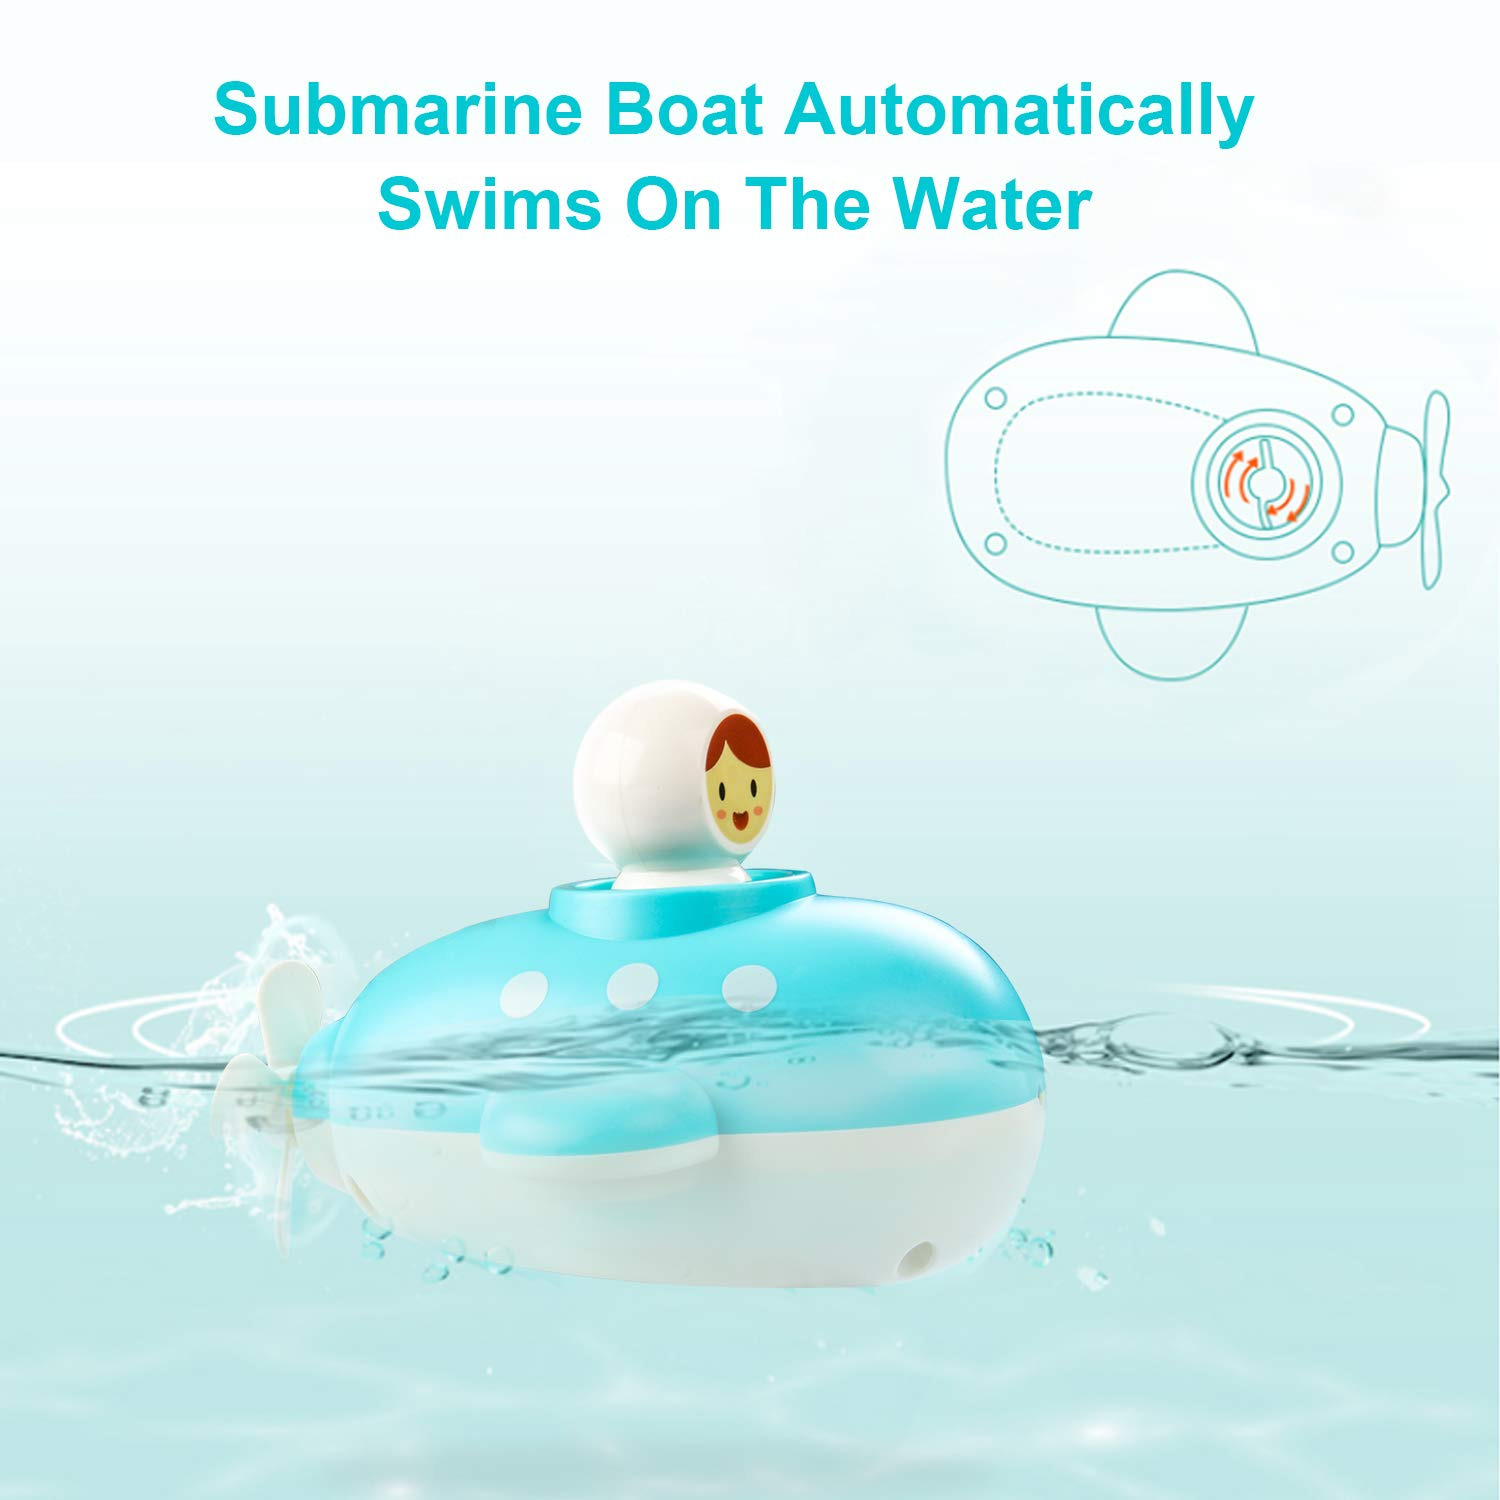 Floating in Bathtub Bathroom Watertable Bathtime for Kids Toddlers Boys Girls Wind Up Submarine Squirts with Propeller Colors May Vary KRATO Bath Boat Toys Pool Toy